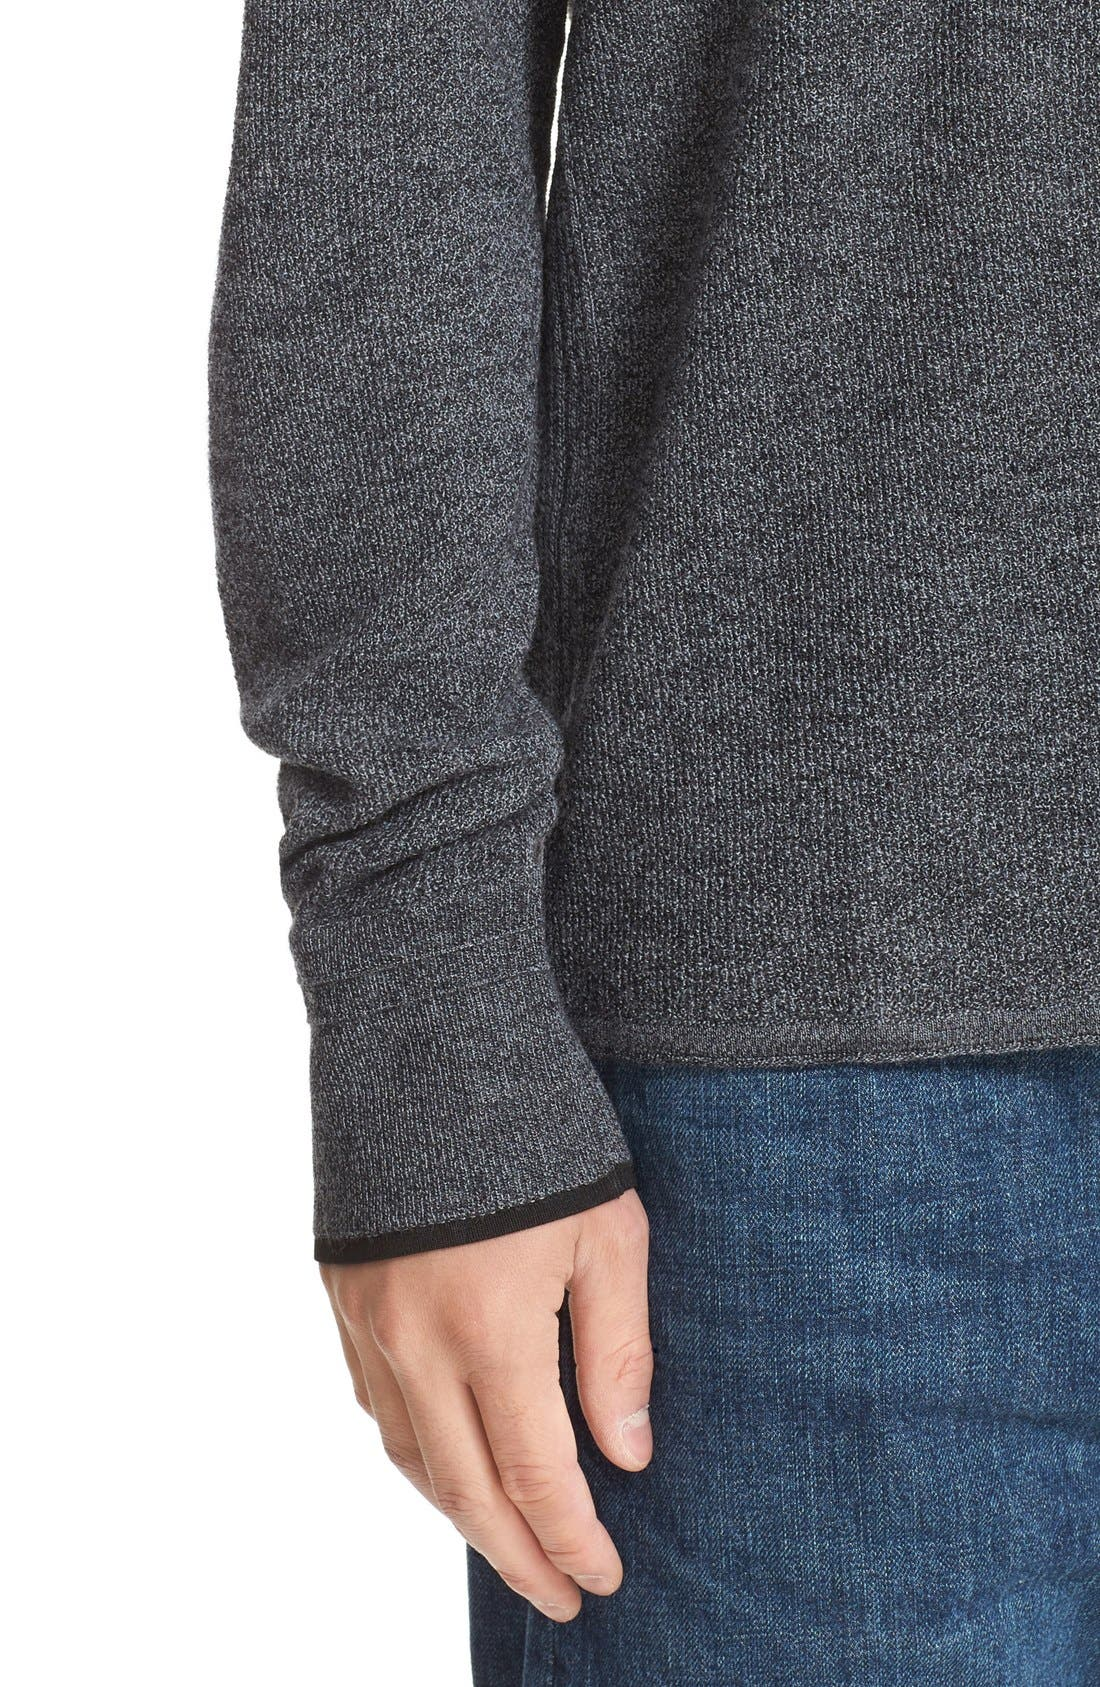 'Giles' Lightweight Merino Wool Pullover,                             Alternate thumbnail 4, color,                             Charcoal